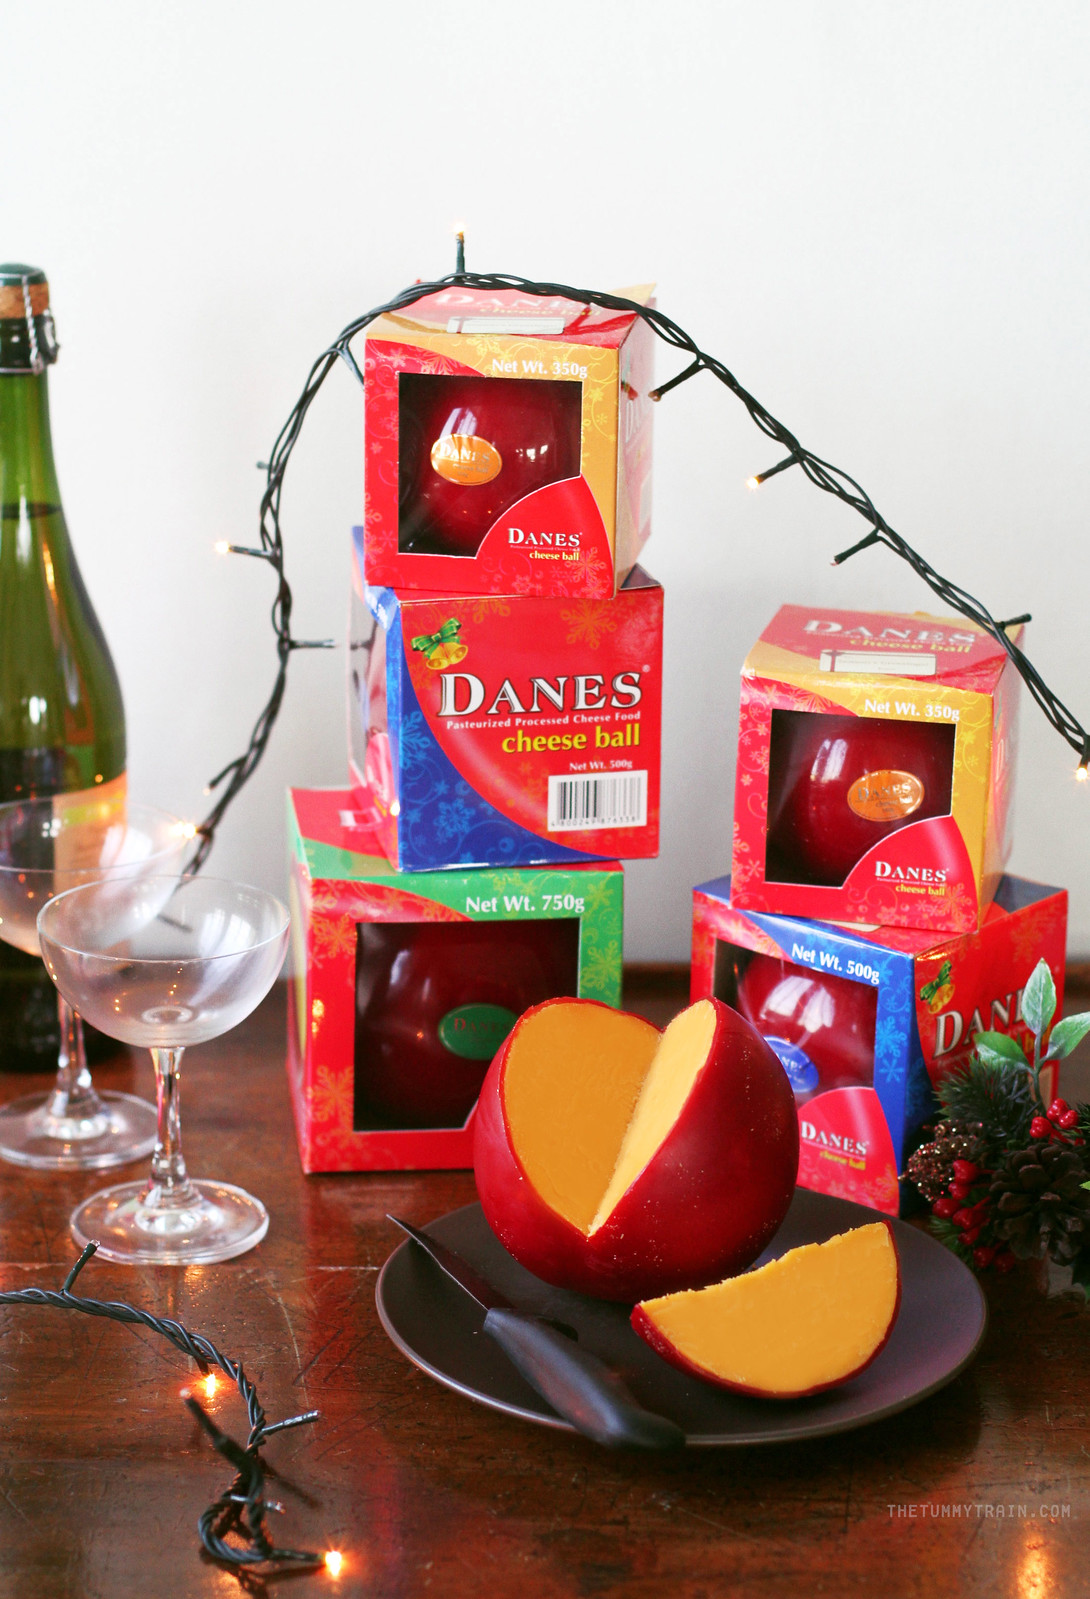 22647283723 acb29d4232 h - Have a sweet and savory Christmas with Danes Cheese Ball